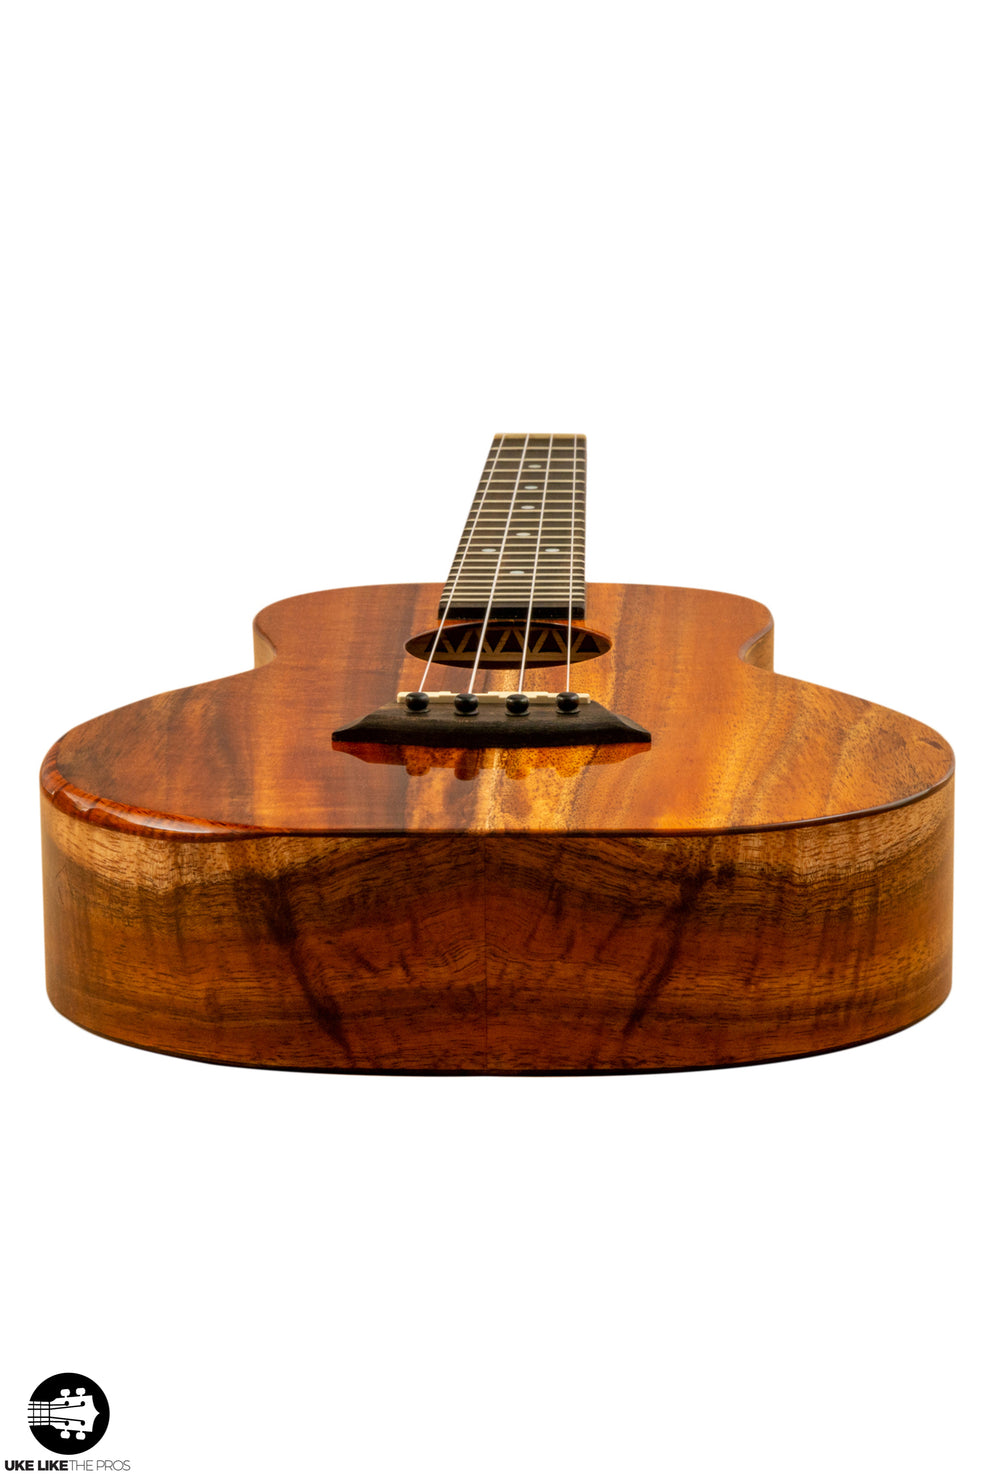 "Kanile'a KSR ST Deluxe Super Tenor Ukulele Solid Koa ""Cloud Forest"""